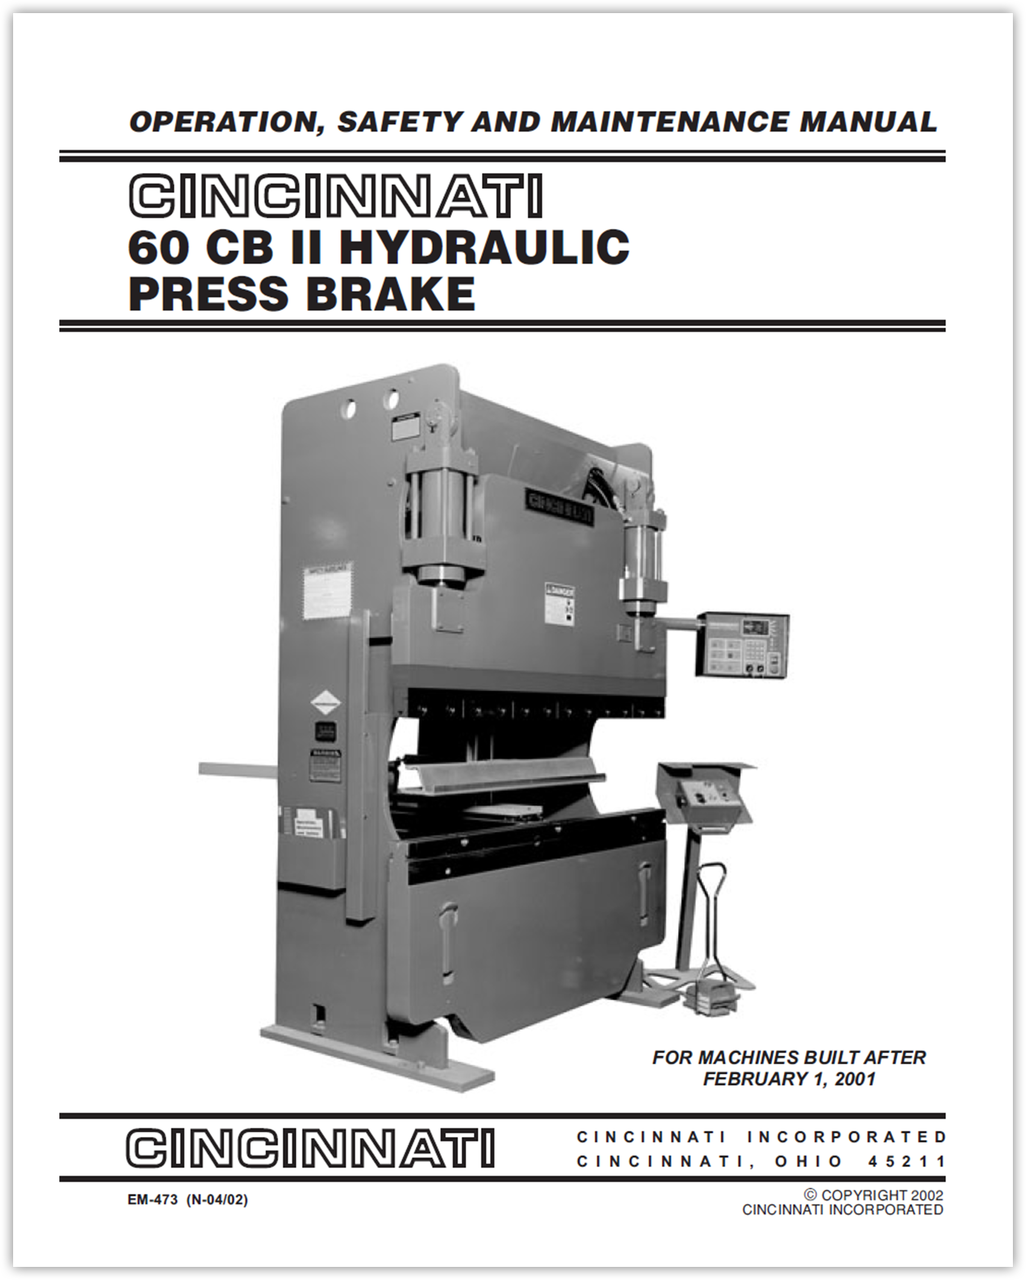 EM-473 (N-04-02) 60 CB II Hydraulic Press Brake - Operation, Safety and Maintenance Manual for Machines Built After February 1, 2001